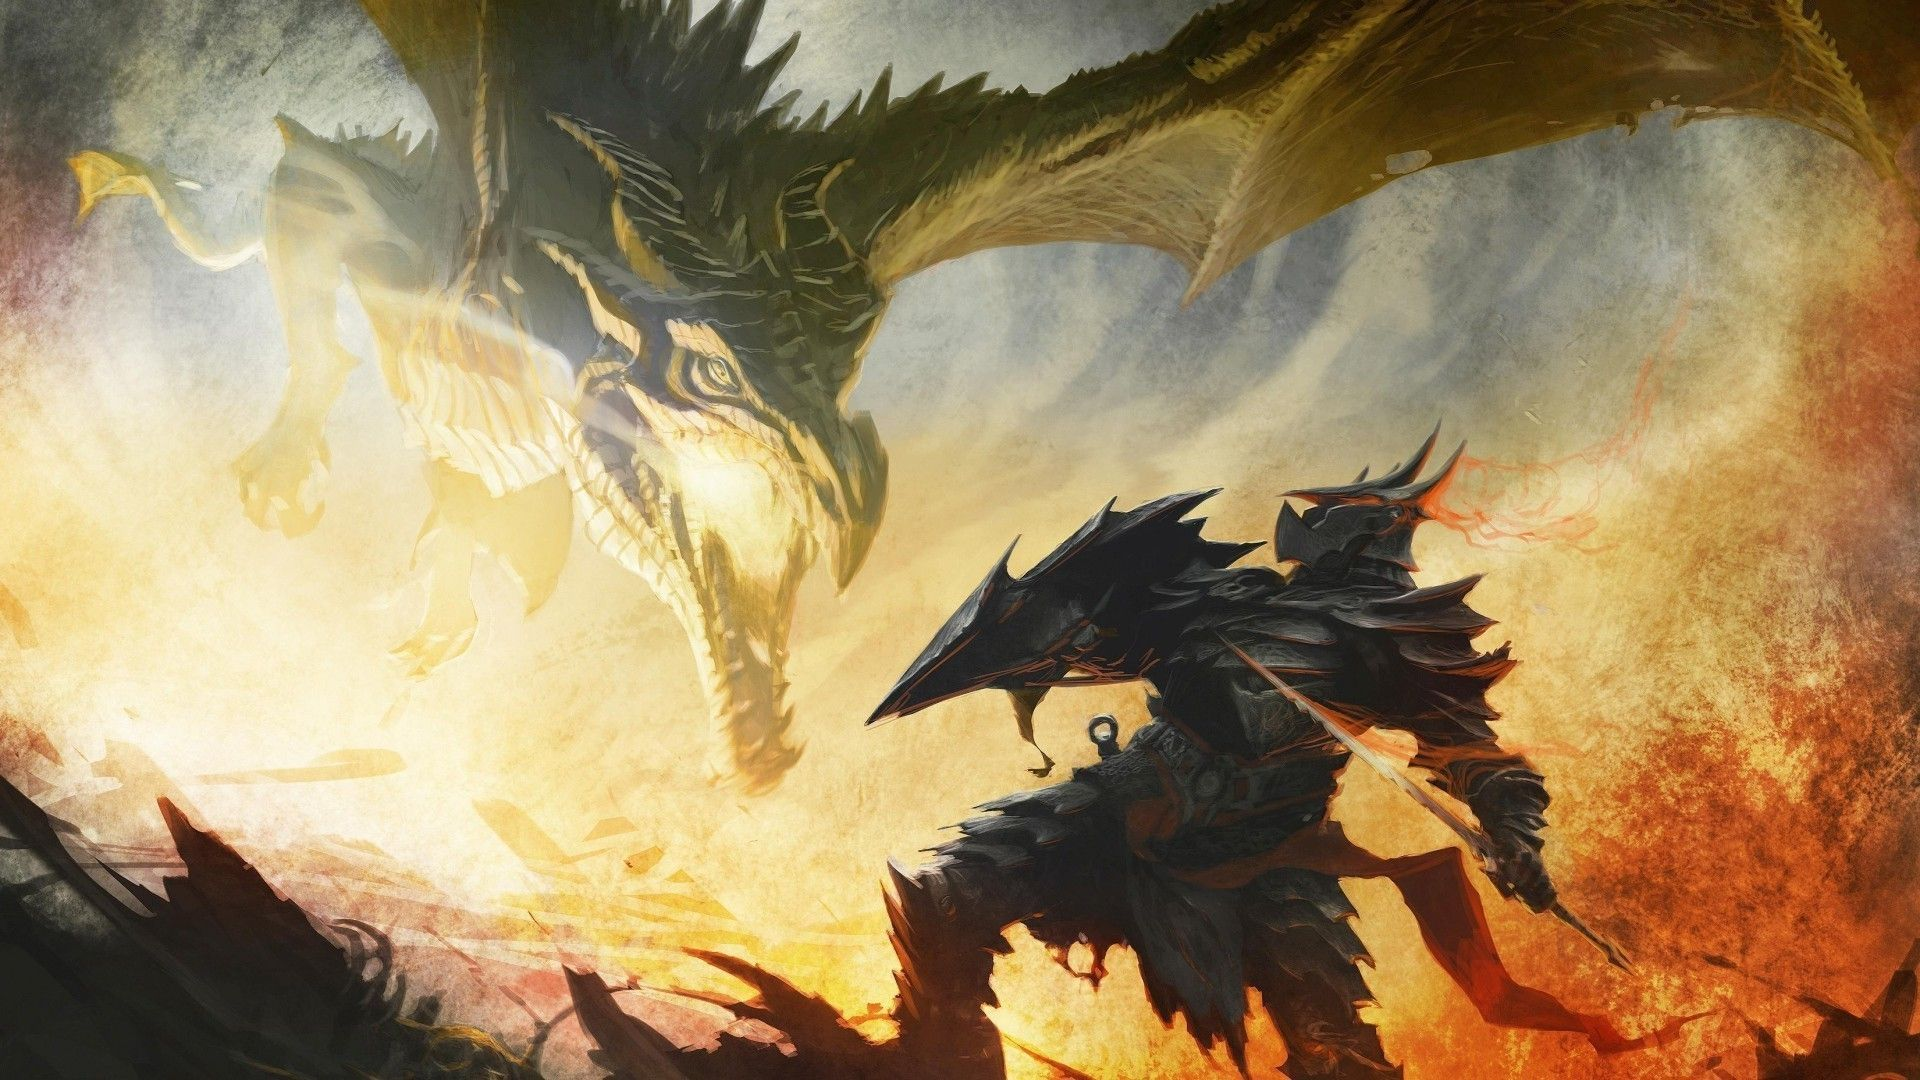 Skyrim Dragon Armor Wallpapers 1080p Skyrim Dragon Armor Skyrim Art Skyrim Deviantart is the world's largest online social community for artists and art enthusiasts, allowing people to connect through the. skyrim dragon armor wallpapers 1080p